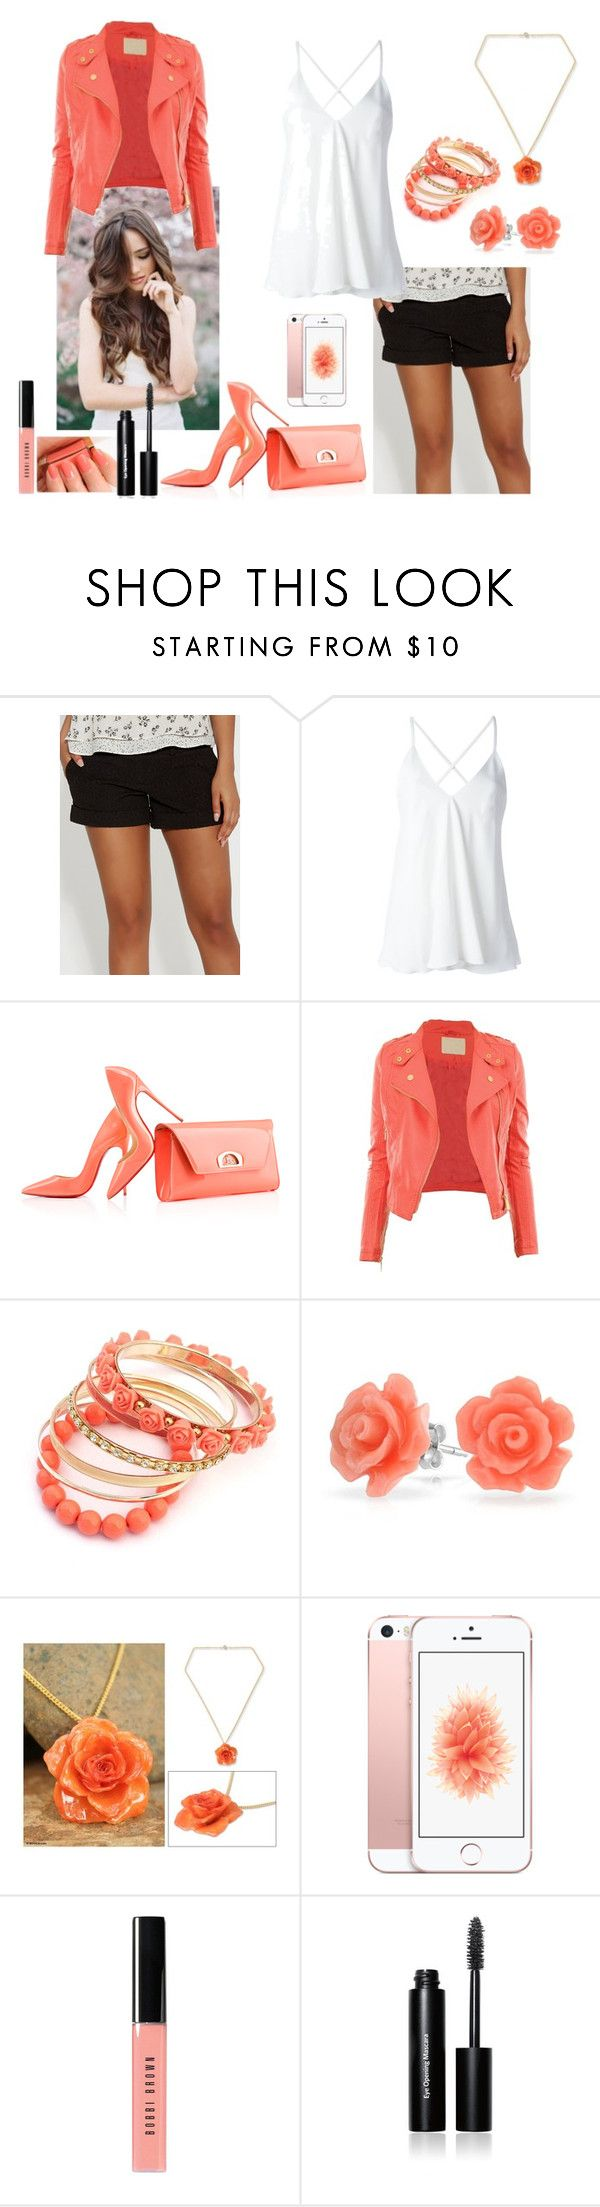 """Time for us to become one. - Czas dla nas aby stać się jednym"" by katrinamil on Polyvore featuring moda, maurices, Dondup, Christian Louboutin, Bling Jewelry, NOVICA, Bobbi Brown Cosmetics i Tom Ford"